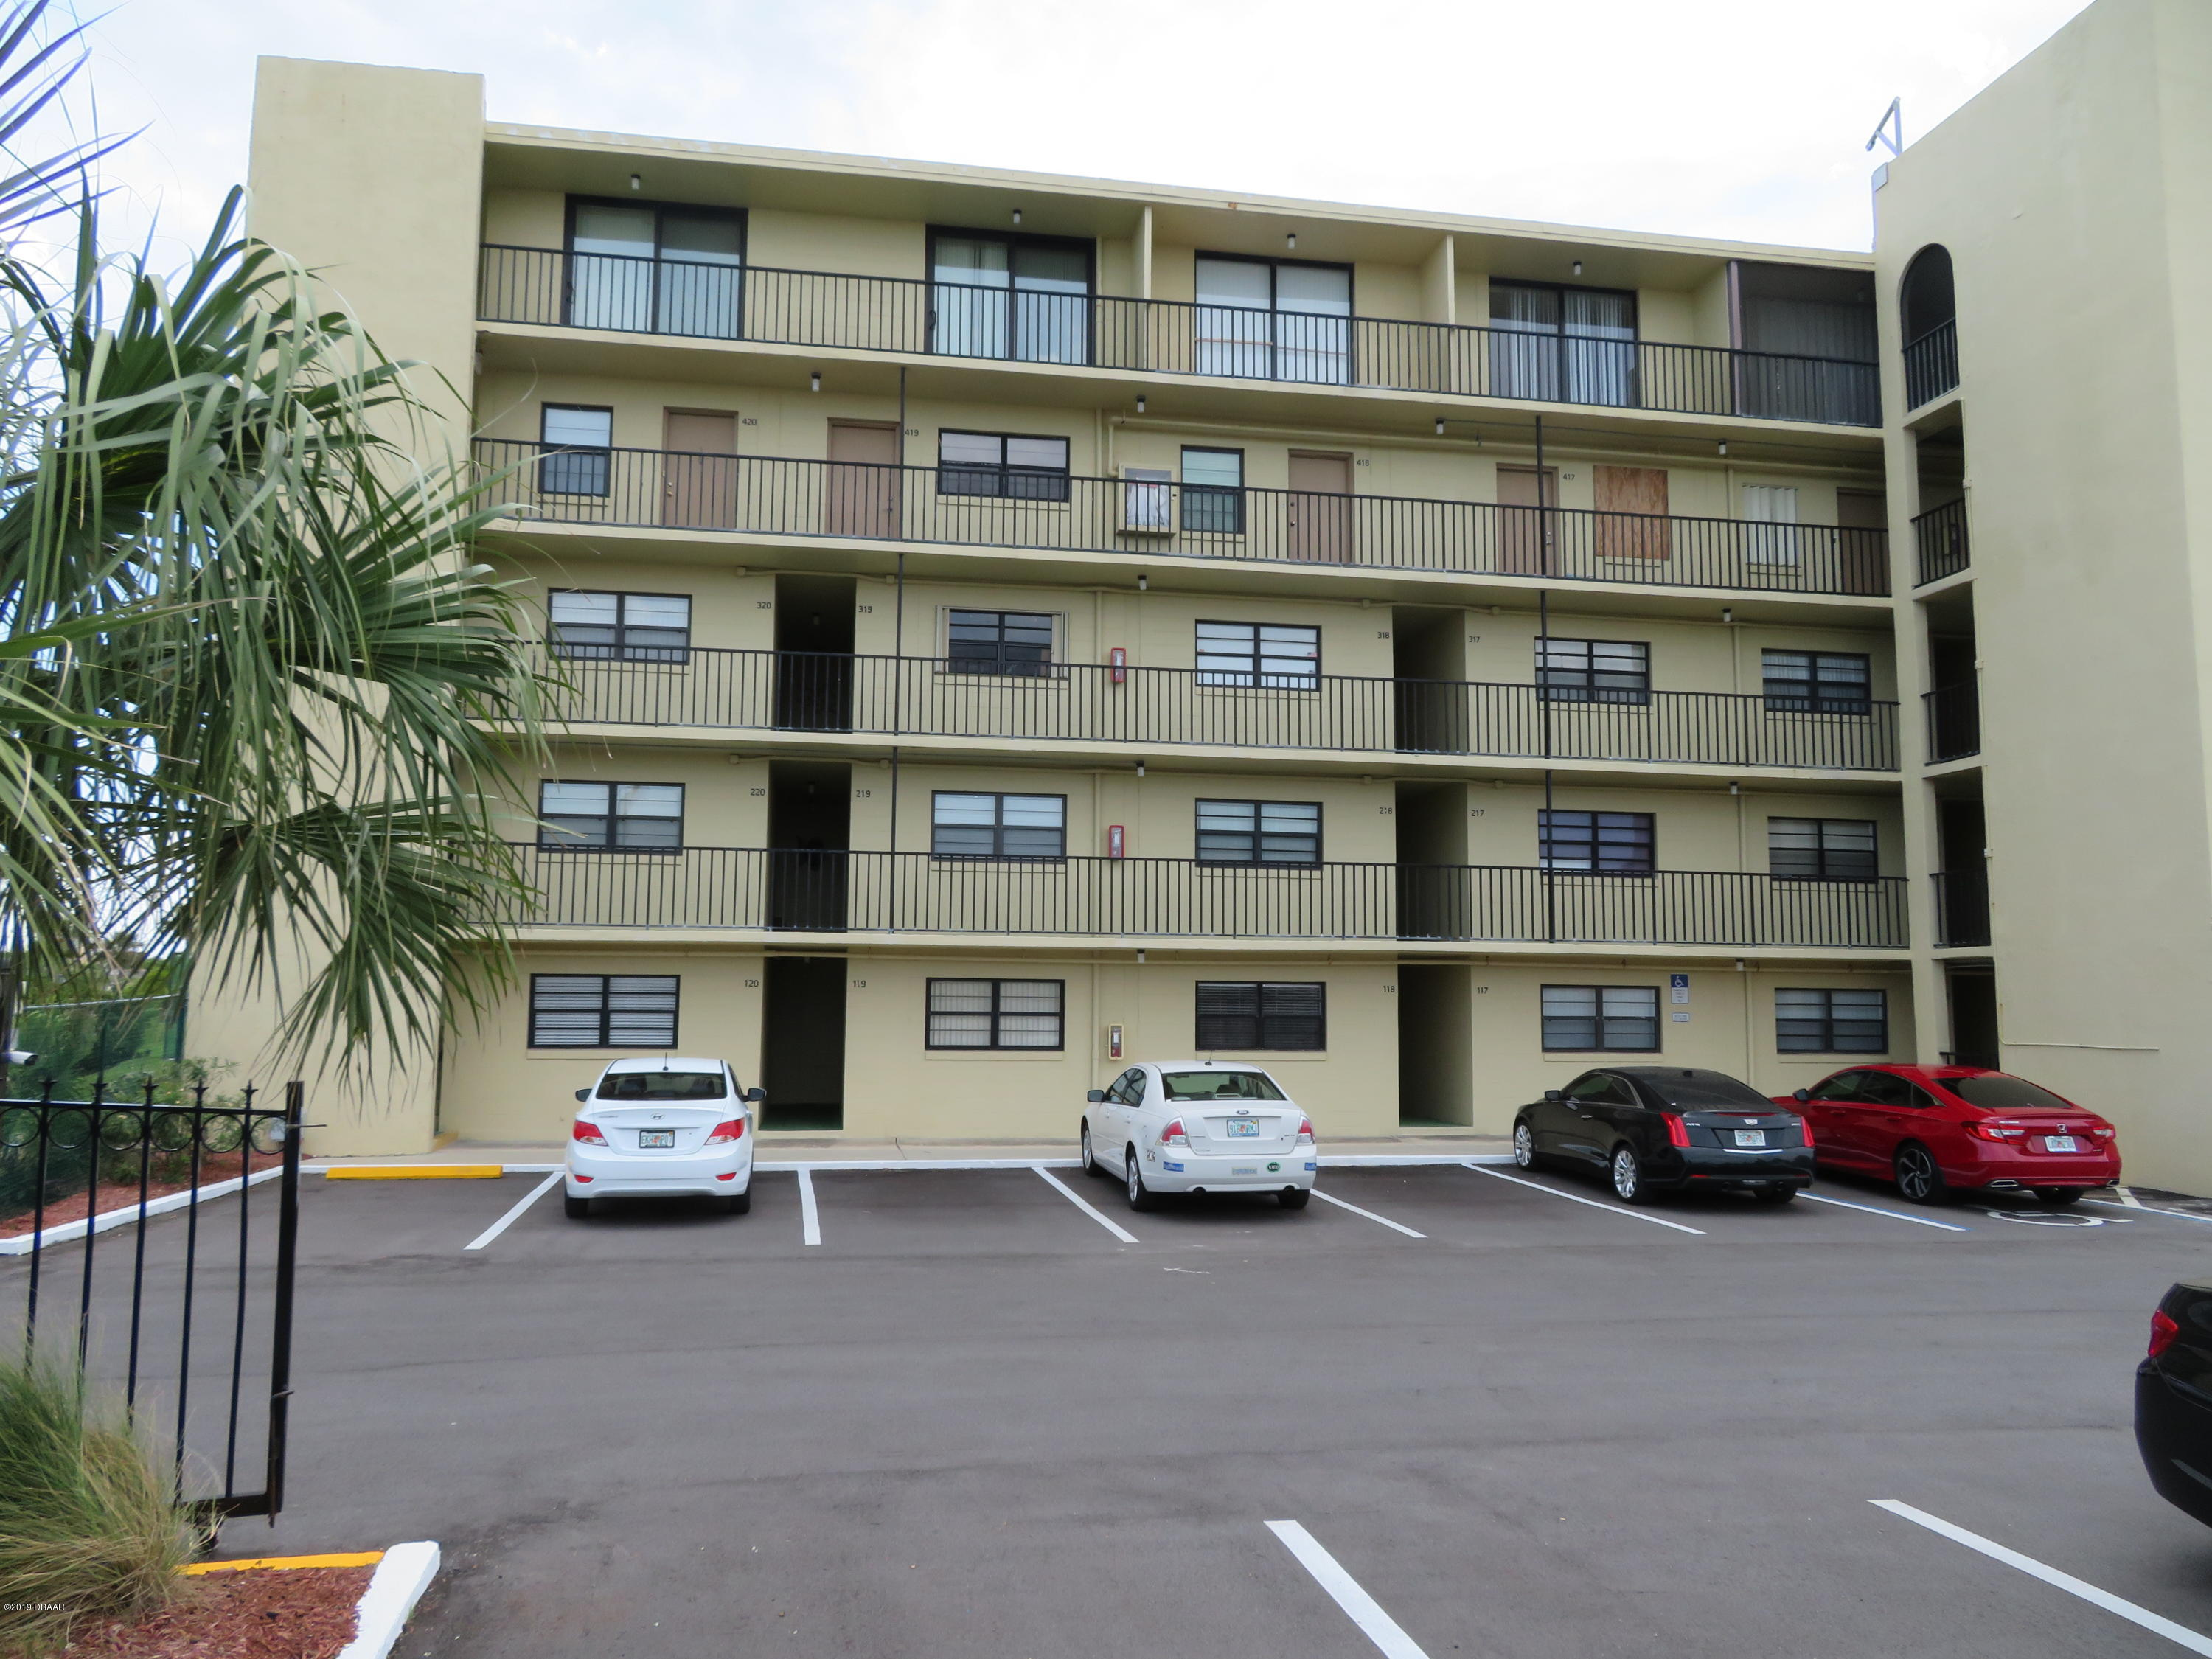 1441 Atlantic Daytona Beach - 1